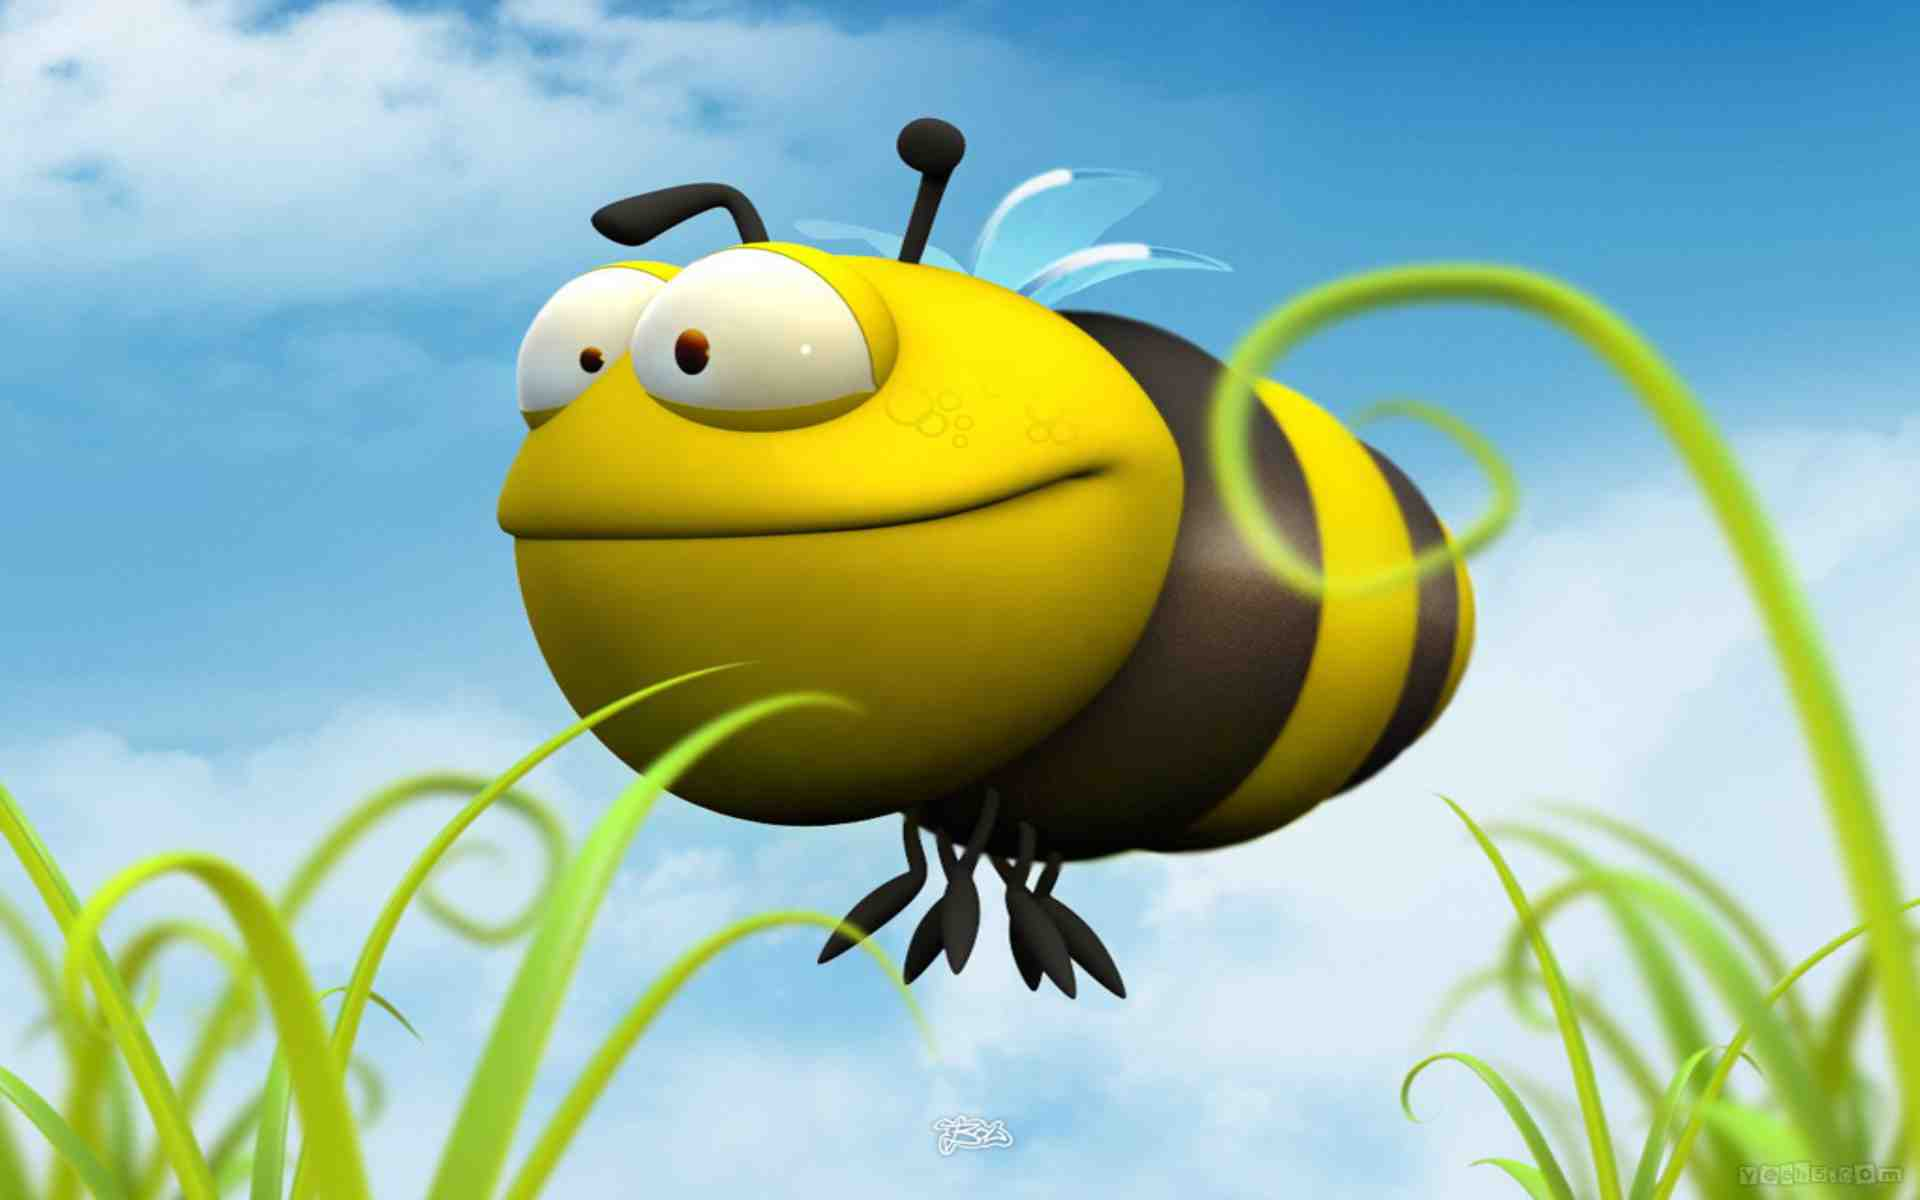 This is a picture of Striking Funny Bee Picture